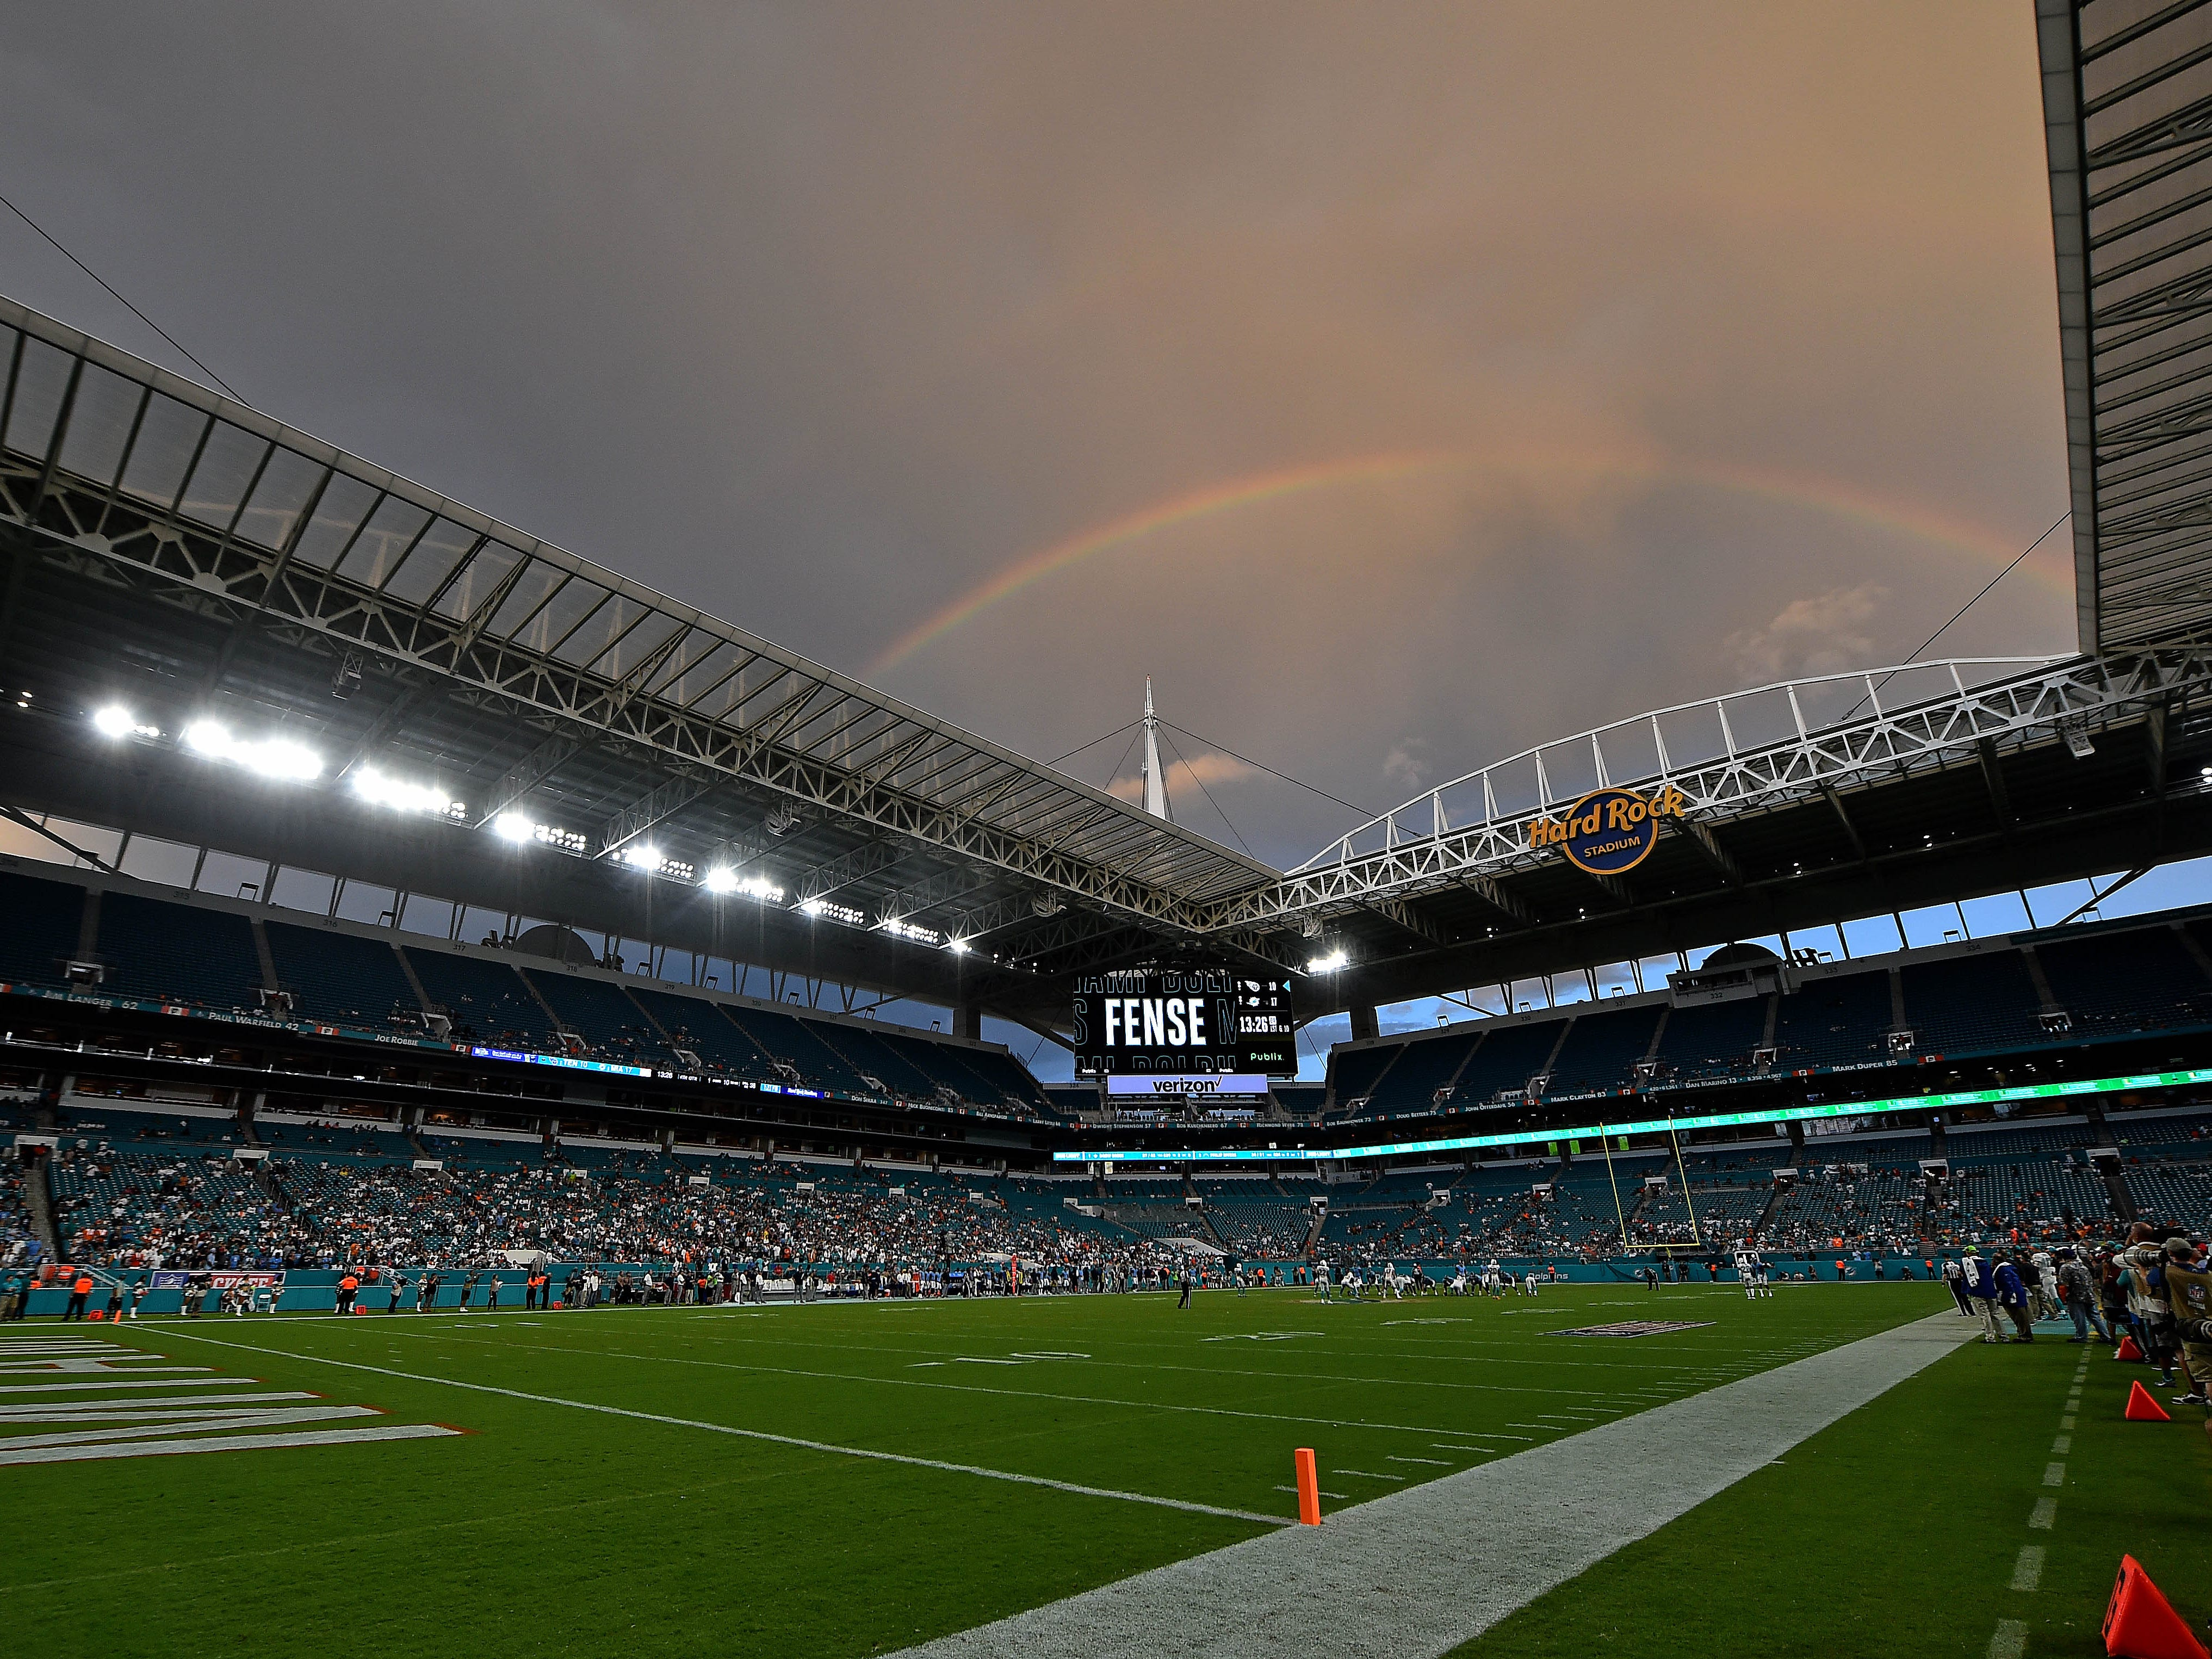 Week 1: A rainbow appears during the second half of the game between the Miami Dolphins and the Tennessee Titans at Hard Rock Stadium.